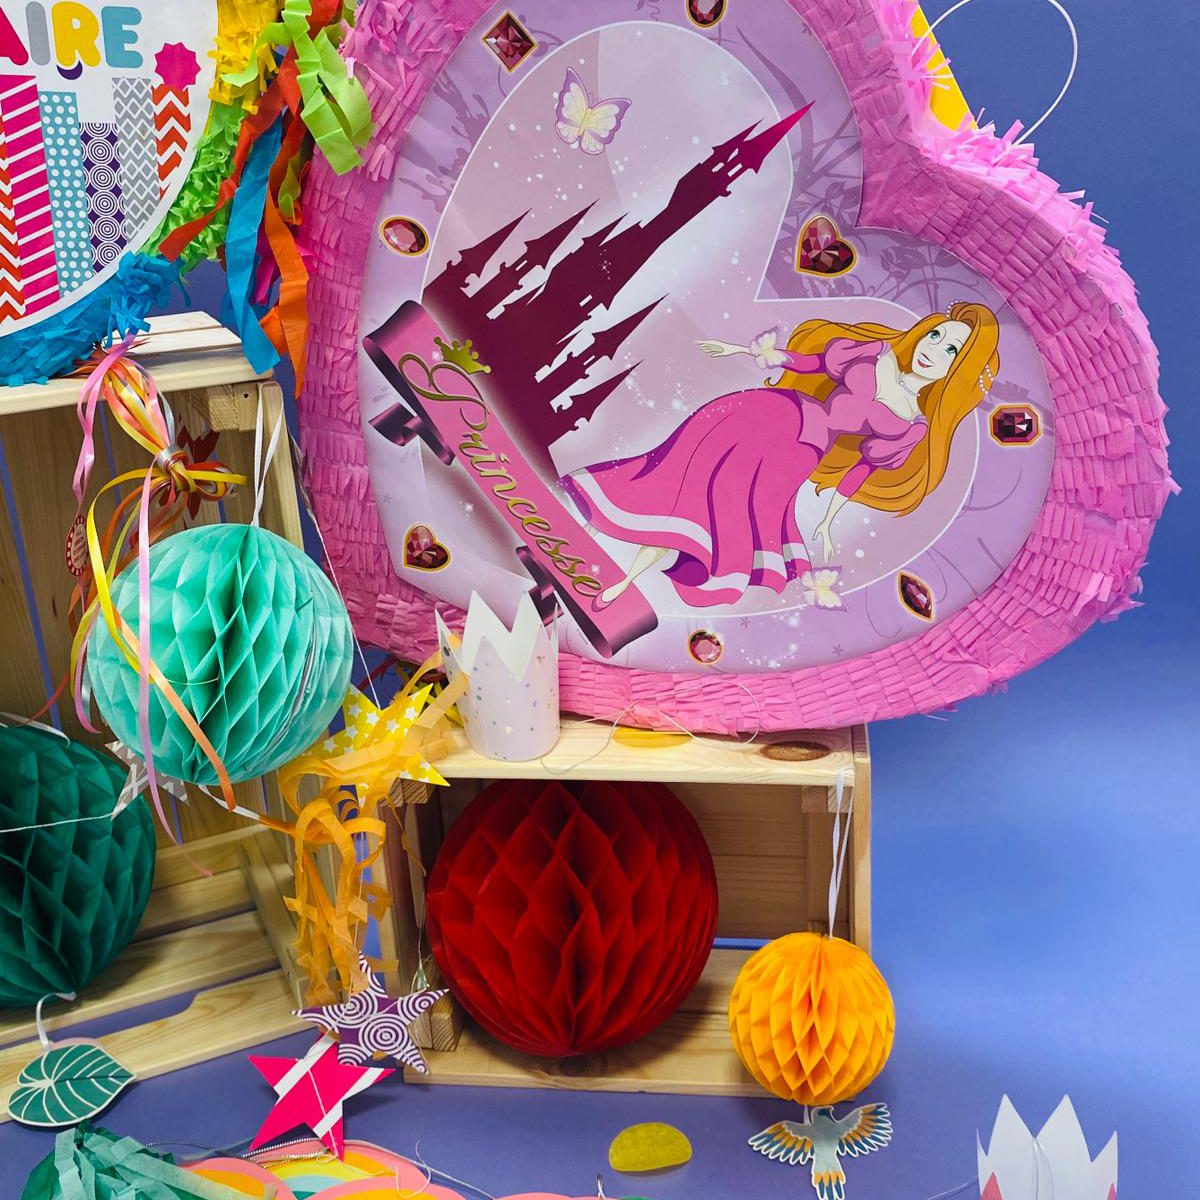 WhatsApp Image 2020 08 27 at 11.20.12 1 square - PINATAS